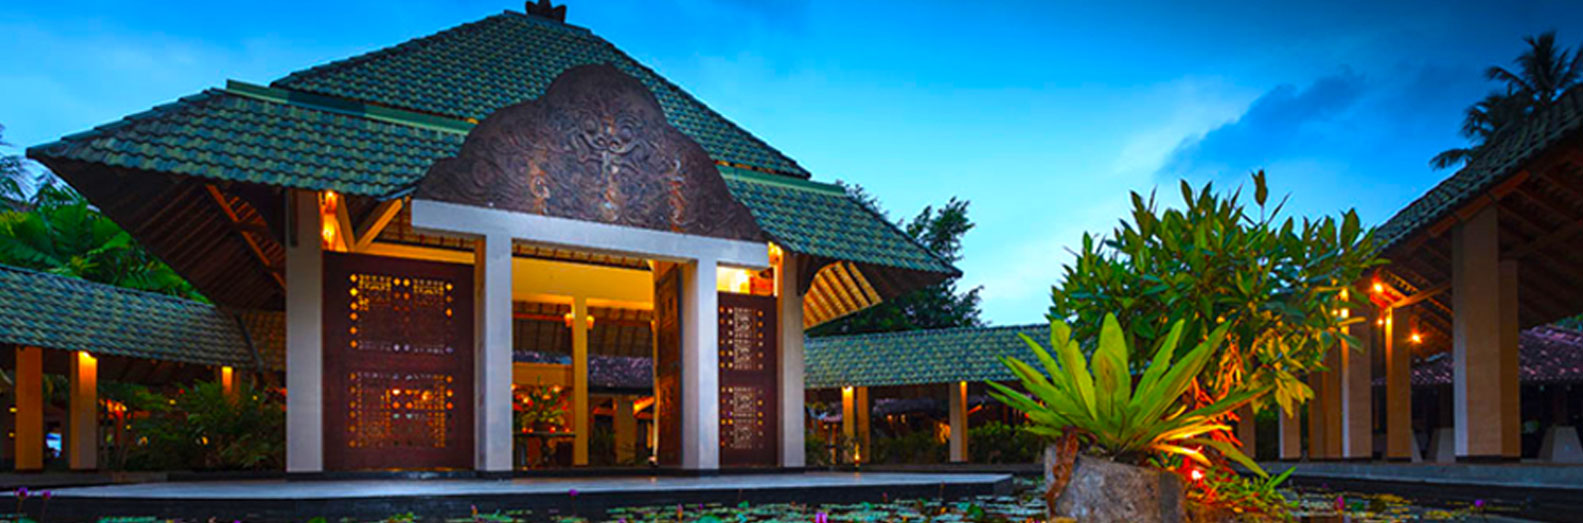 Special offers from The Palms Hotel in Beruwala, Sri Lanka